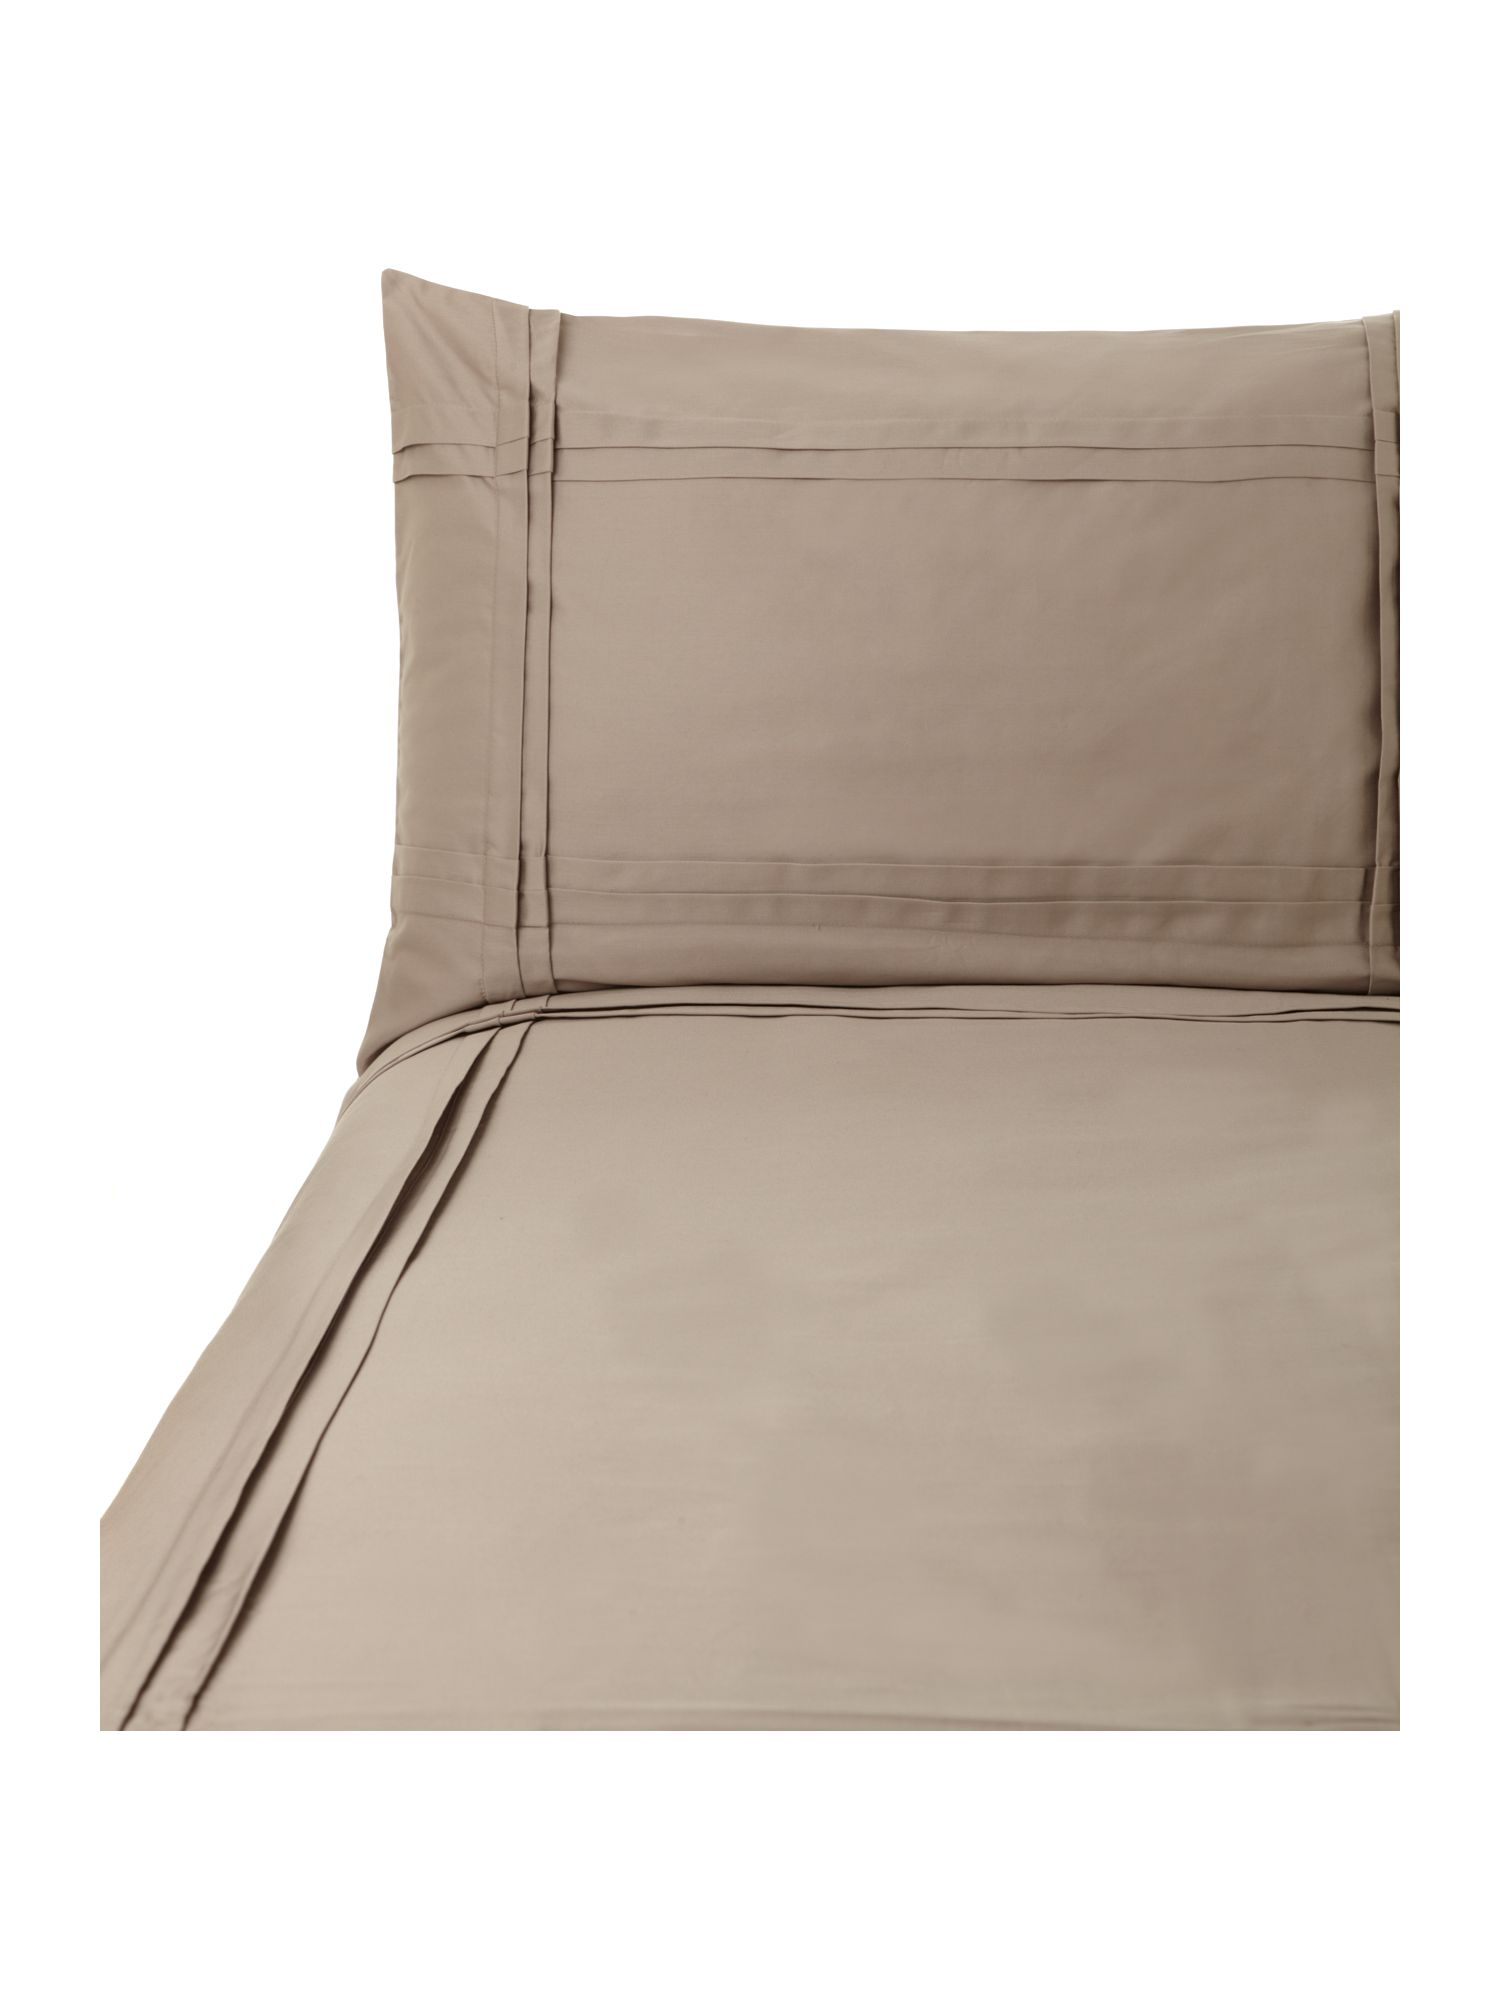 Criss Cross Pleats double duvet cover set oyster